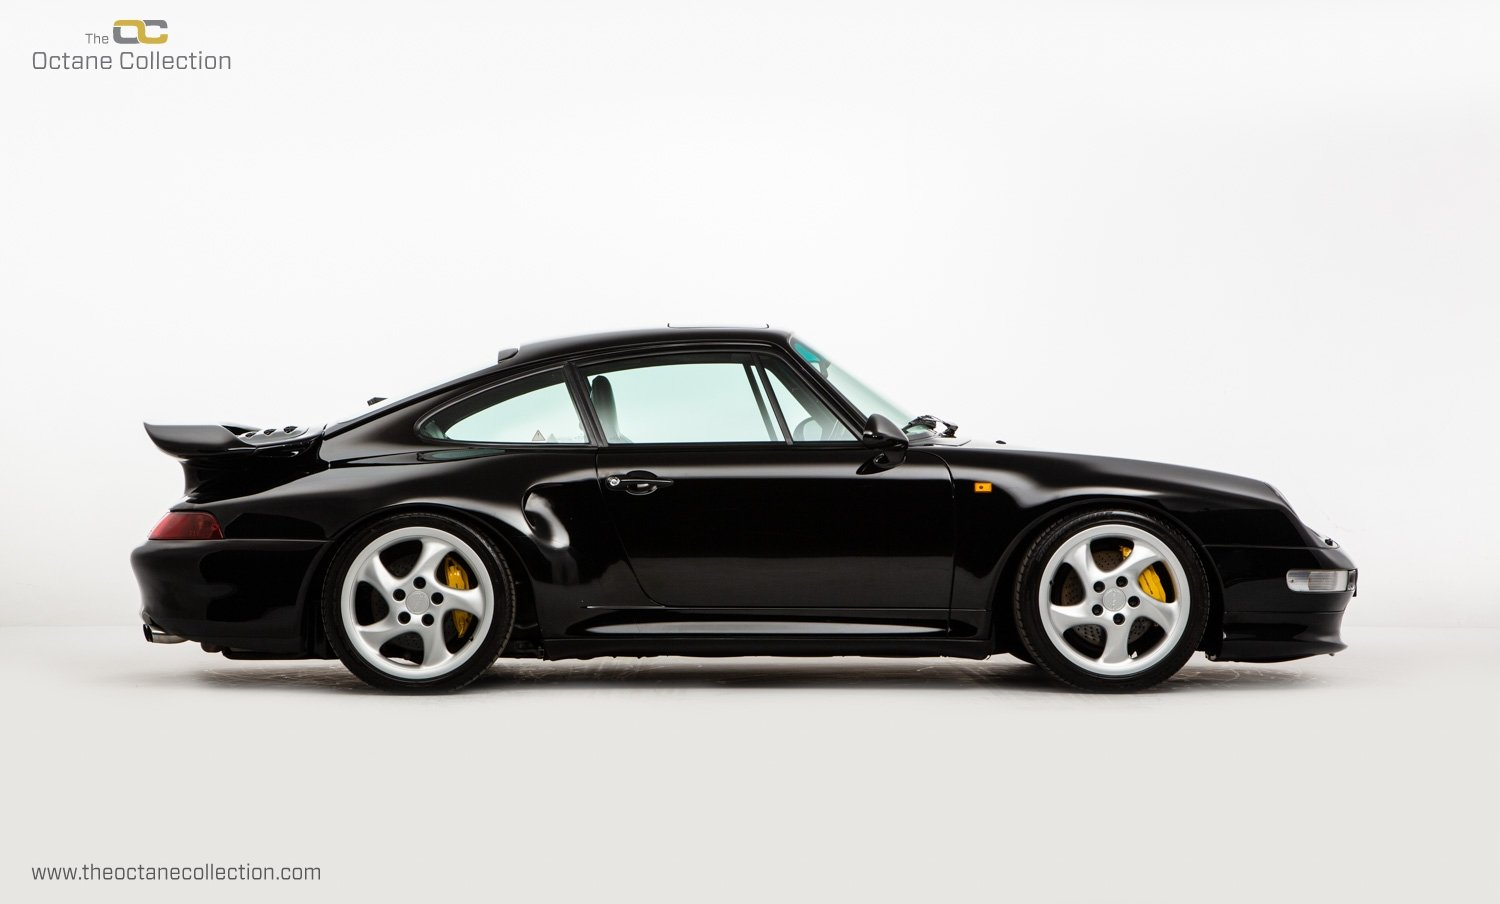 1998 PORSCHE 993 TURBO S // 1 OF 23 RHD CARS // UK C16 // FPSH For Sale (picture 8 of 24)